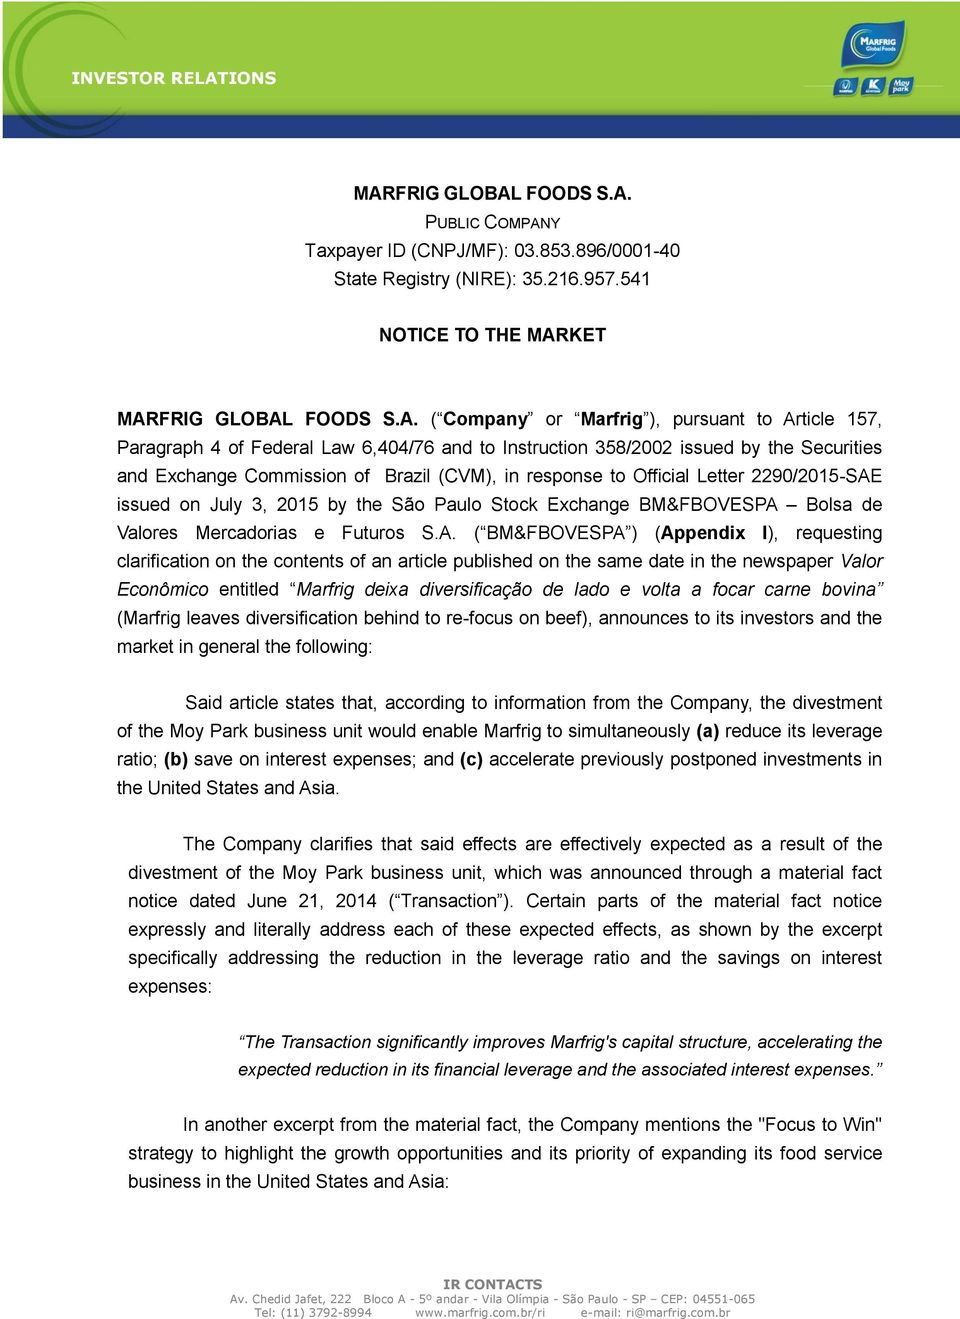 issued on July 3, 2015 by the São Paulo Stock Exchange BM&FBOVESPA